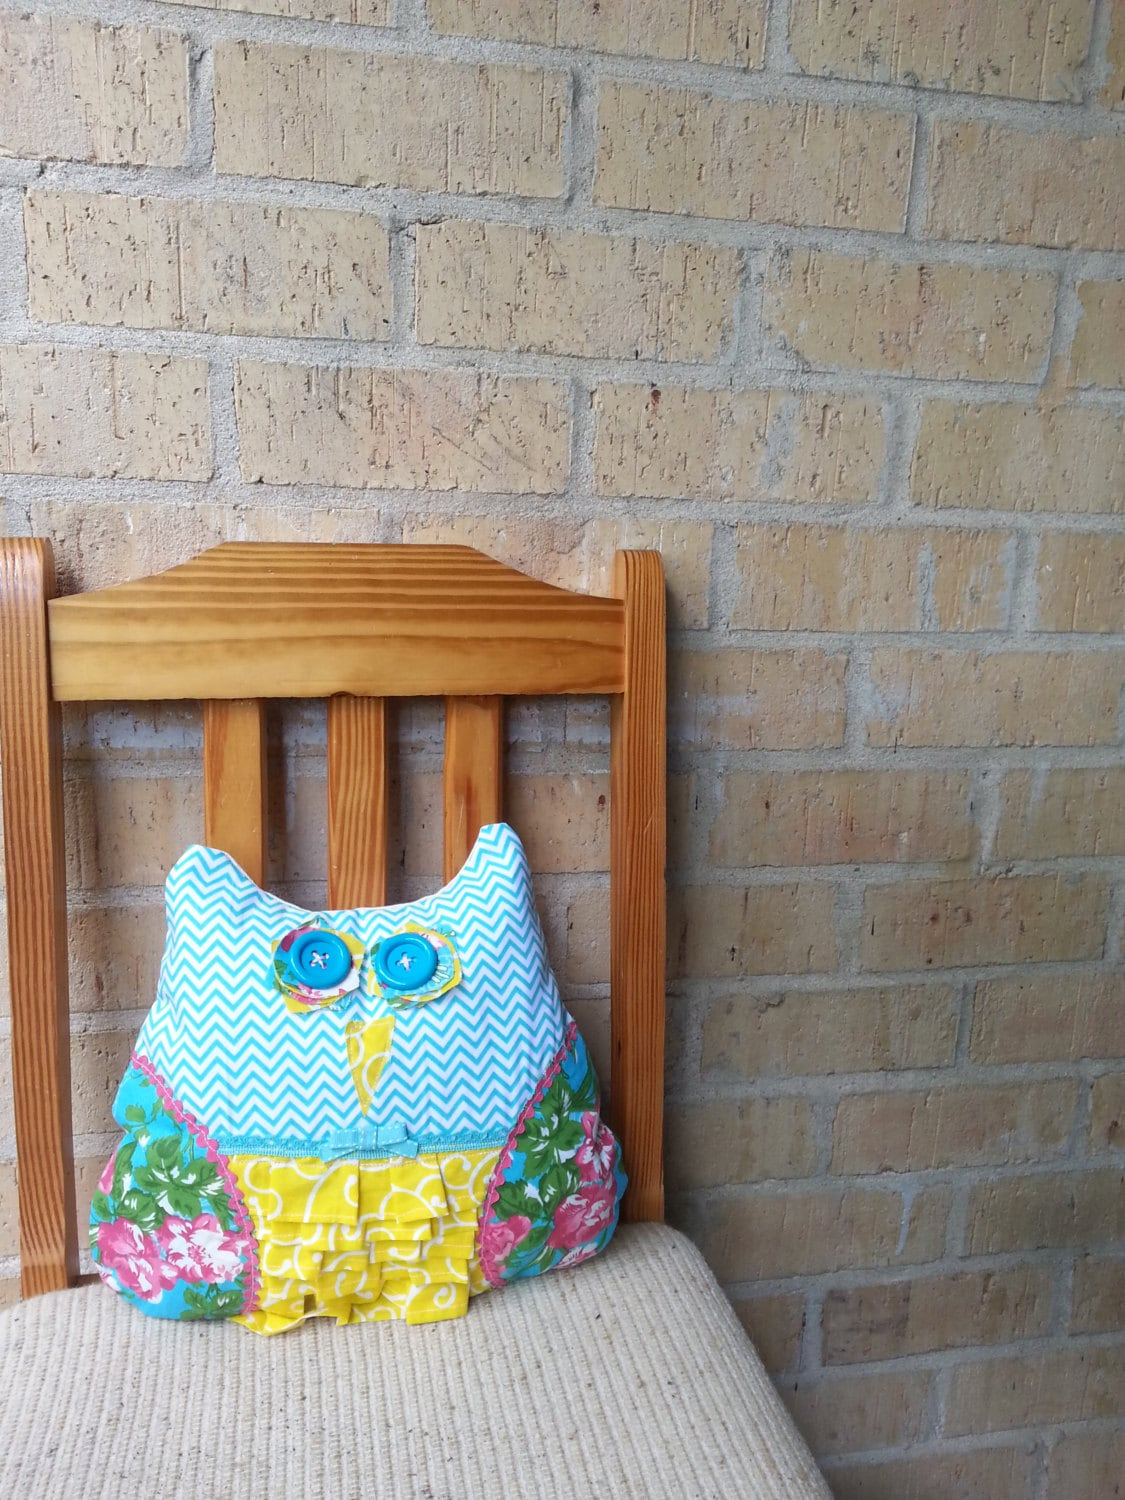 Owl Throw Pillow Etsy : Decorative Owl Throw Pillow by MonstarBoutique on Etsy